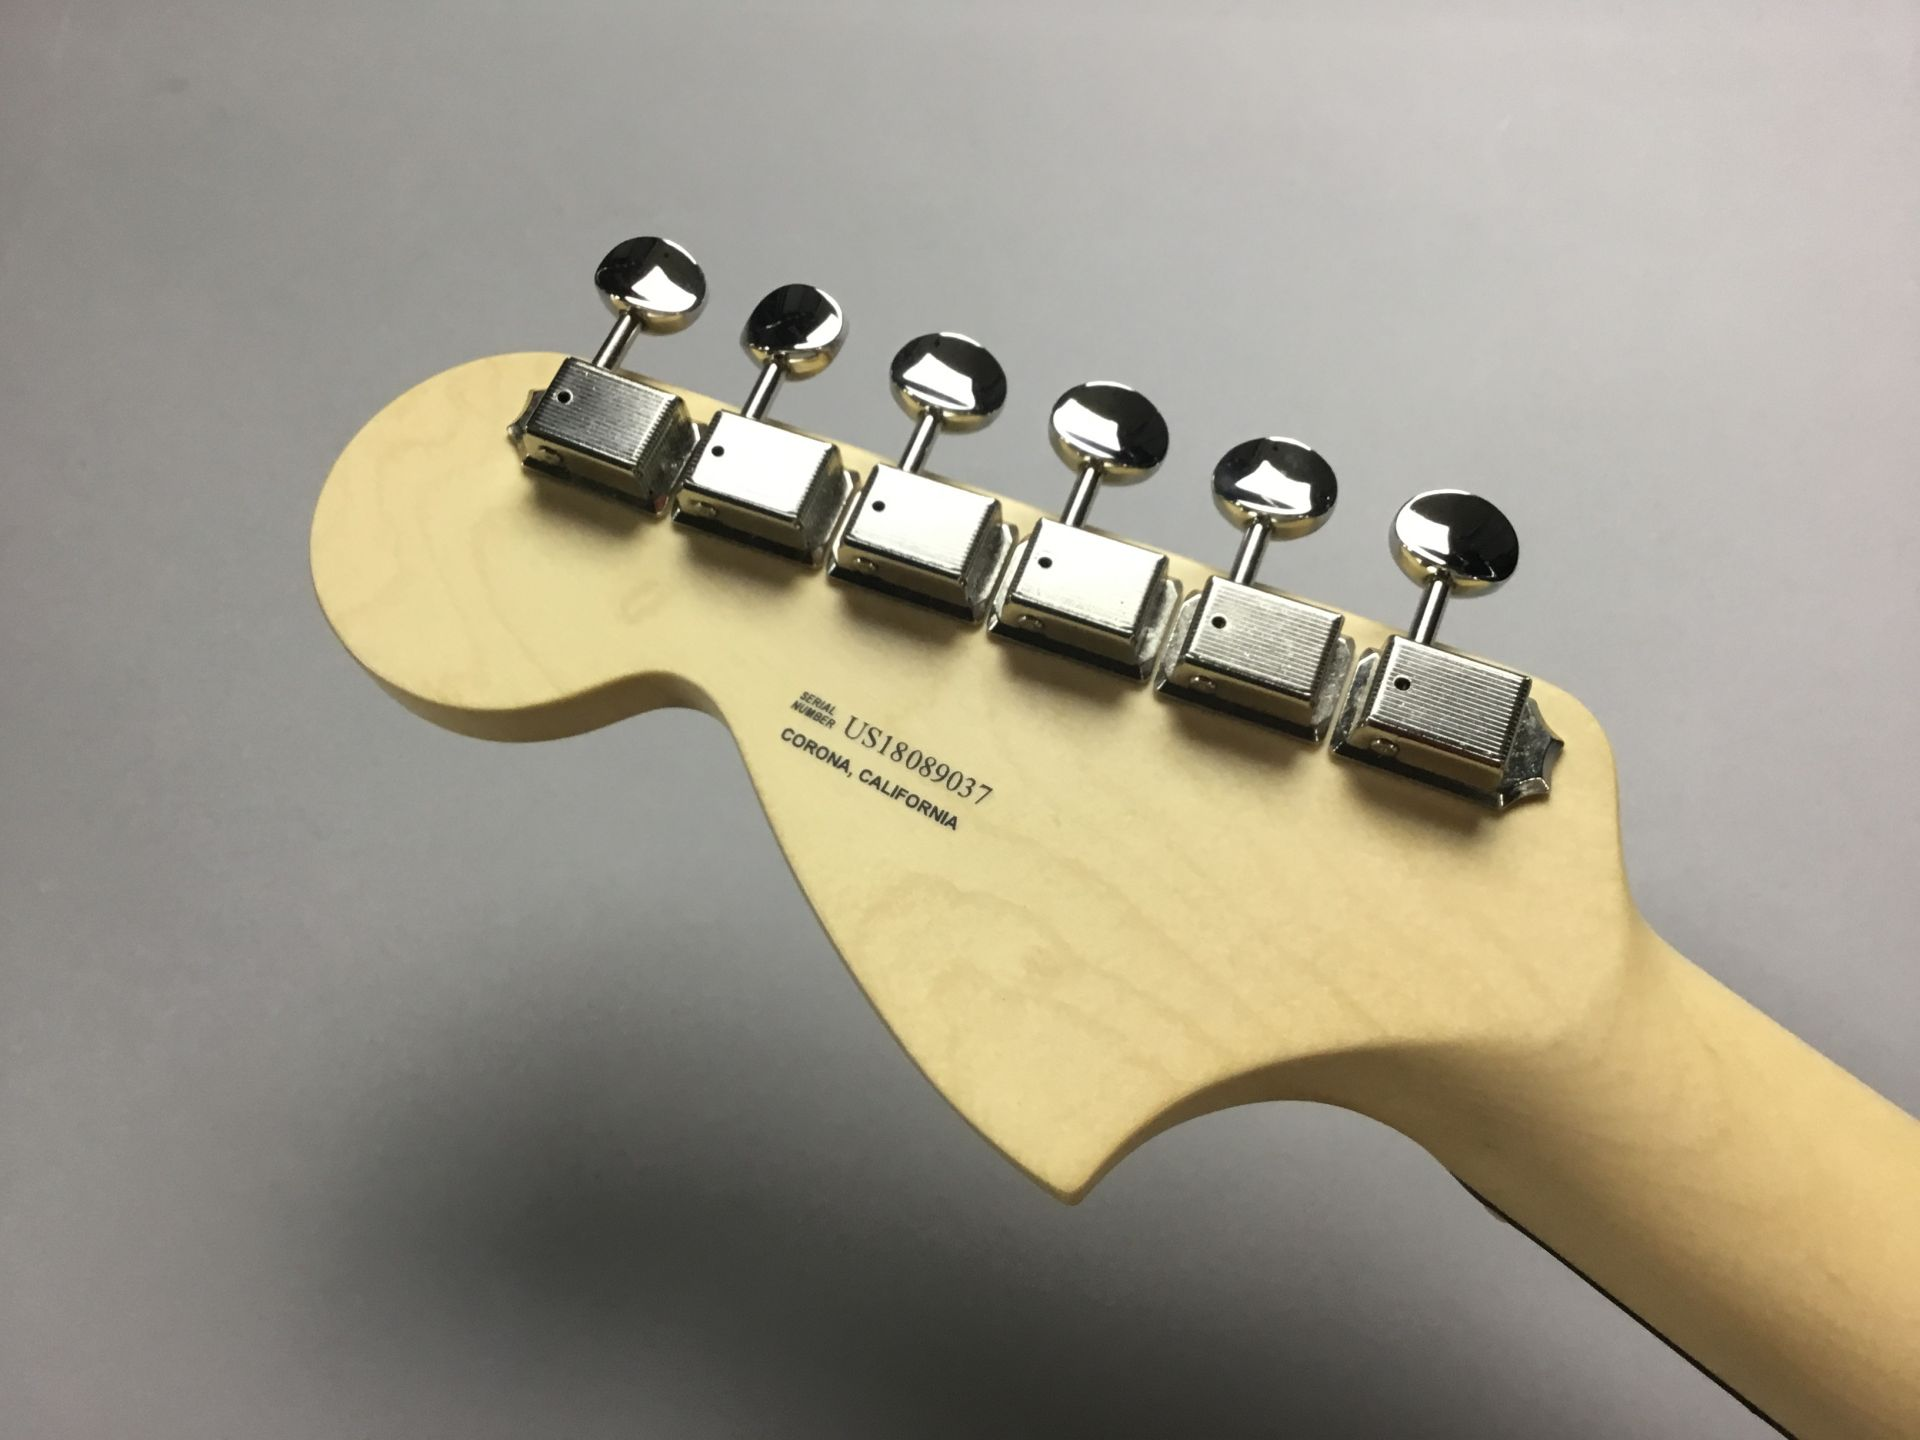 American Performer Stratocasterのケース・その他画像